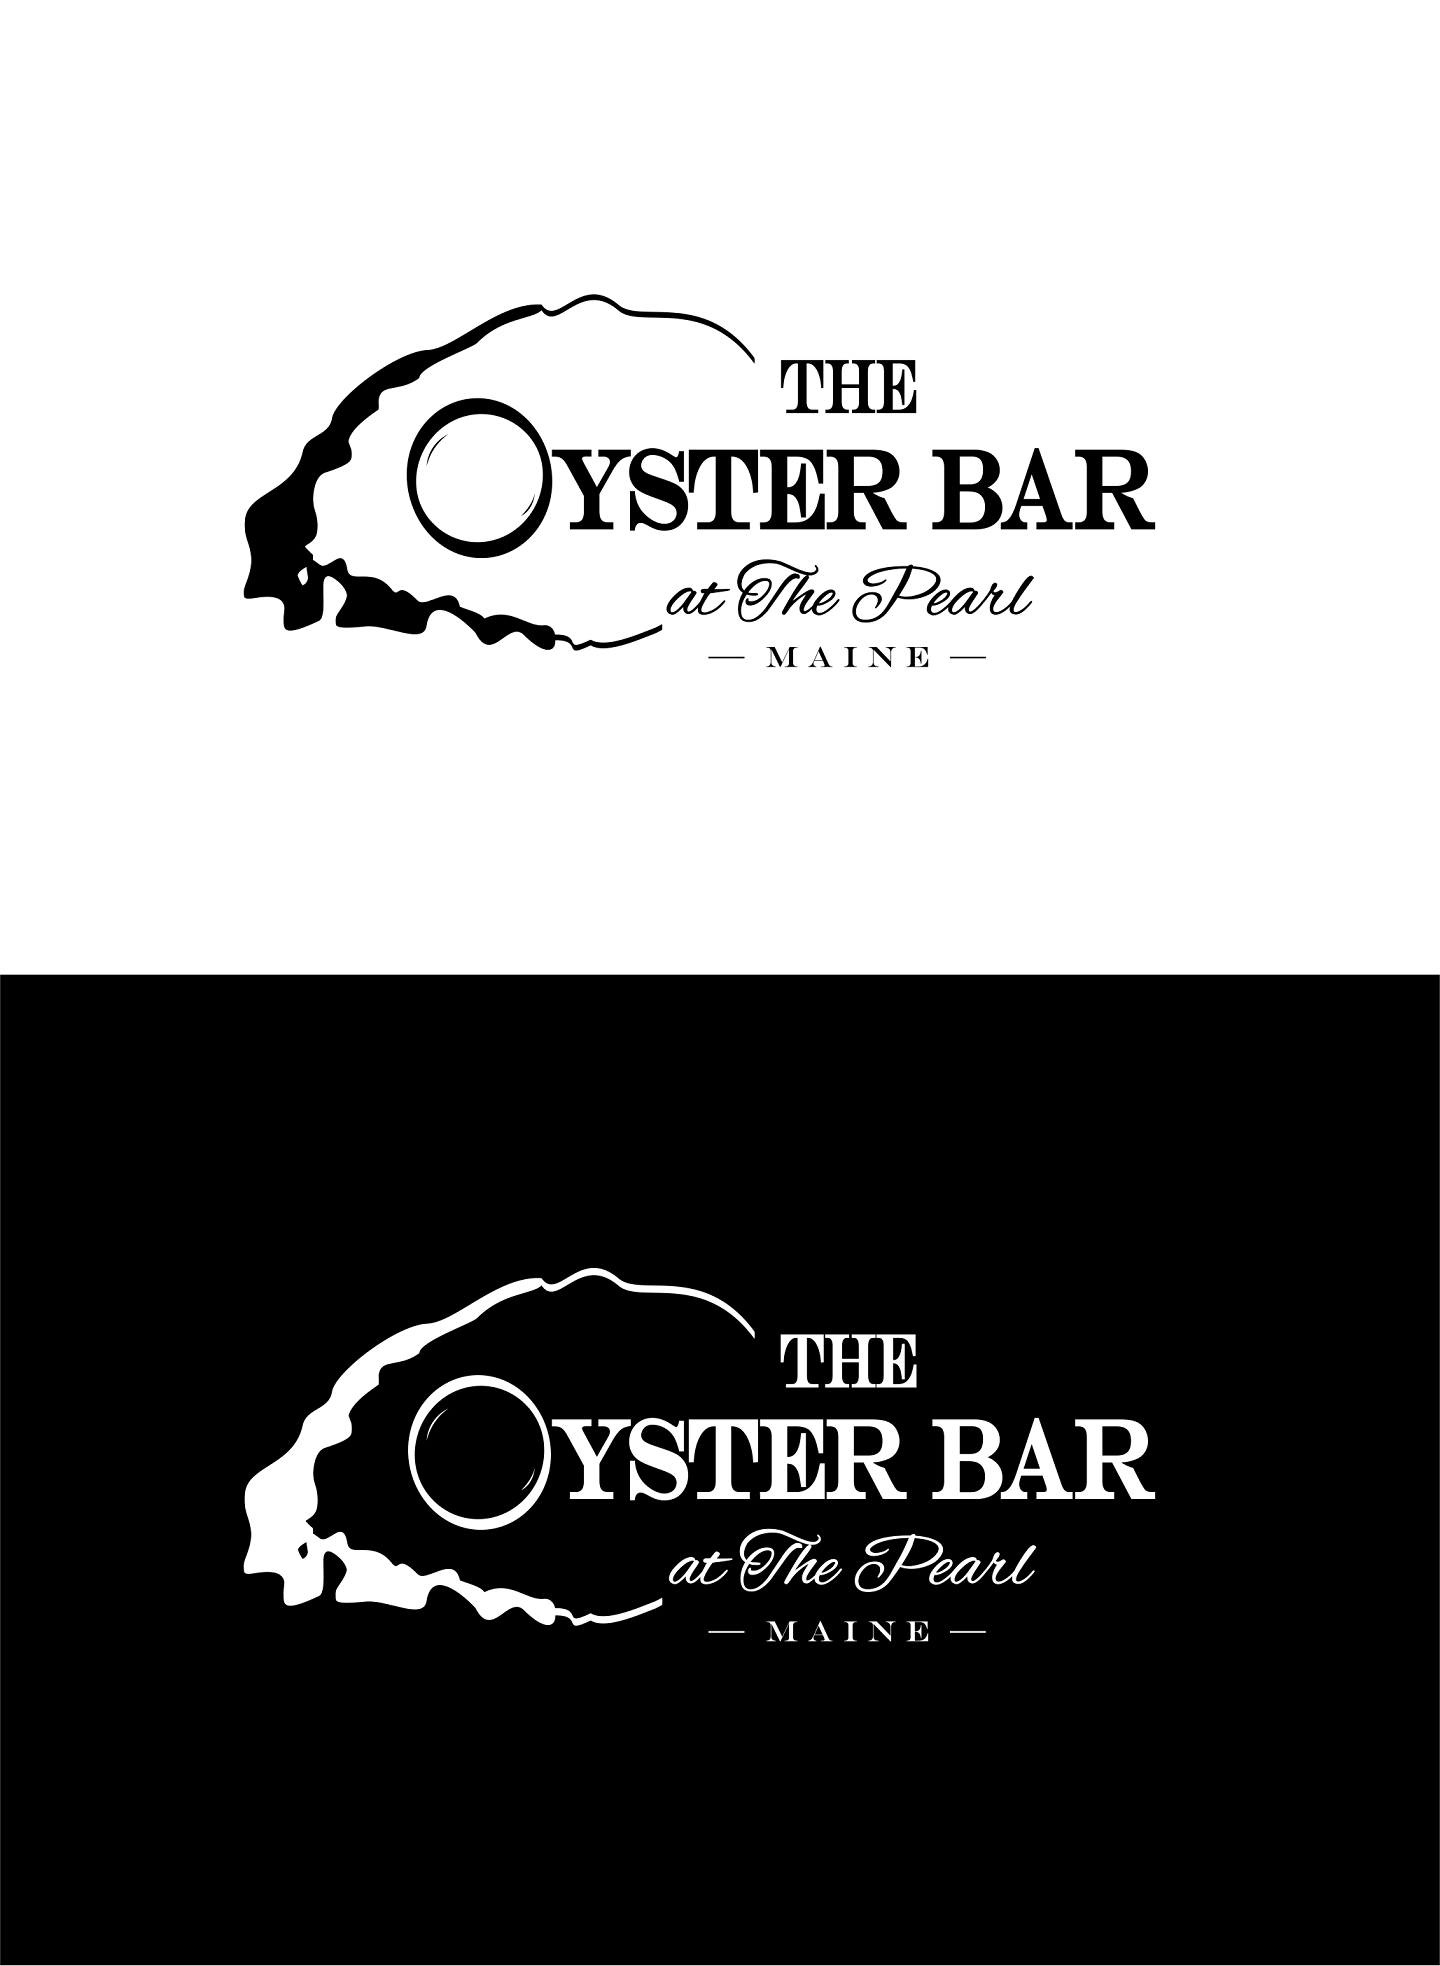 Rebrand a new Oyster bar within a historic seafood restaurant